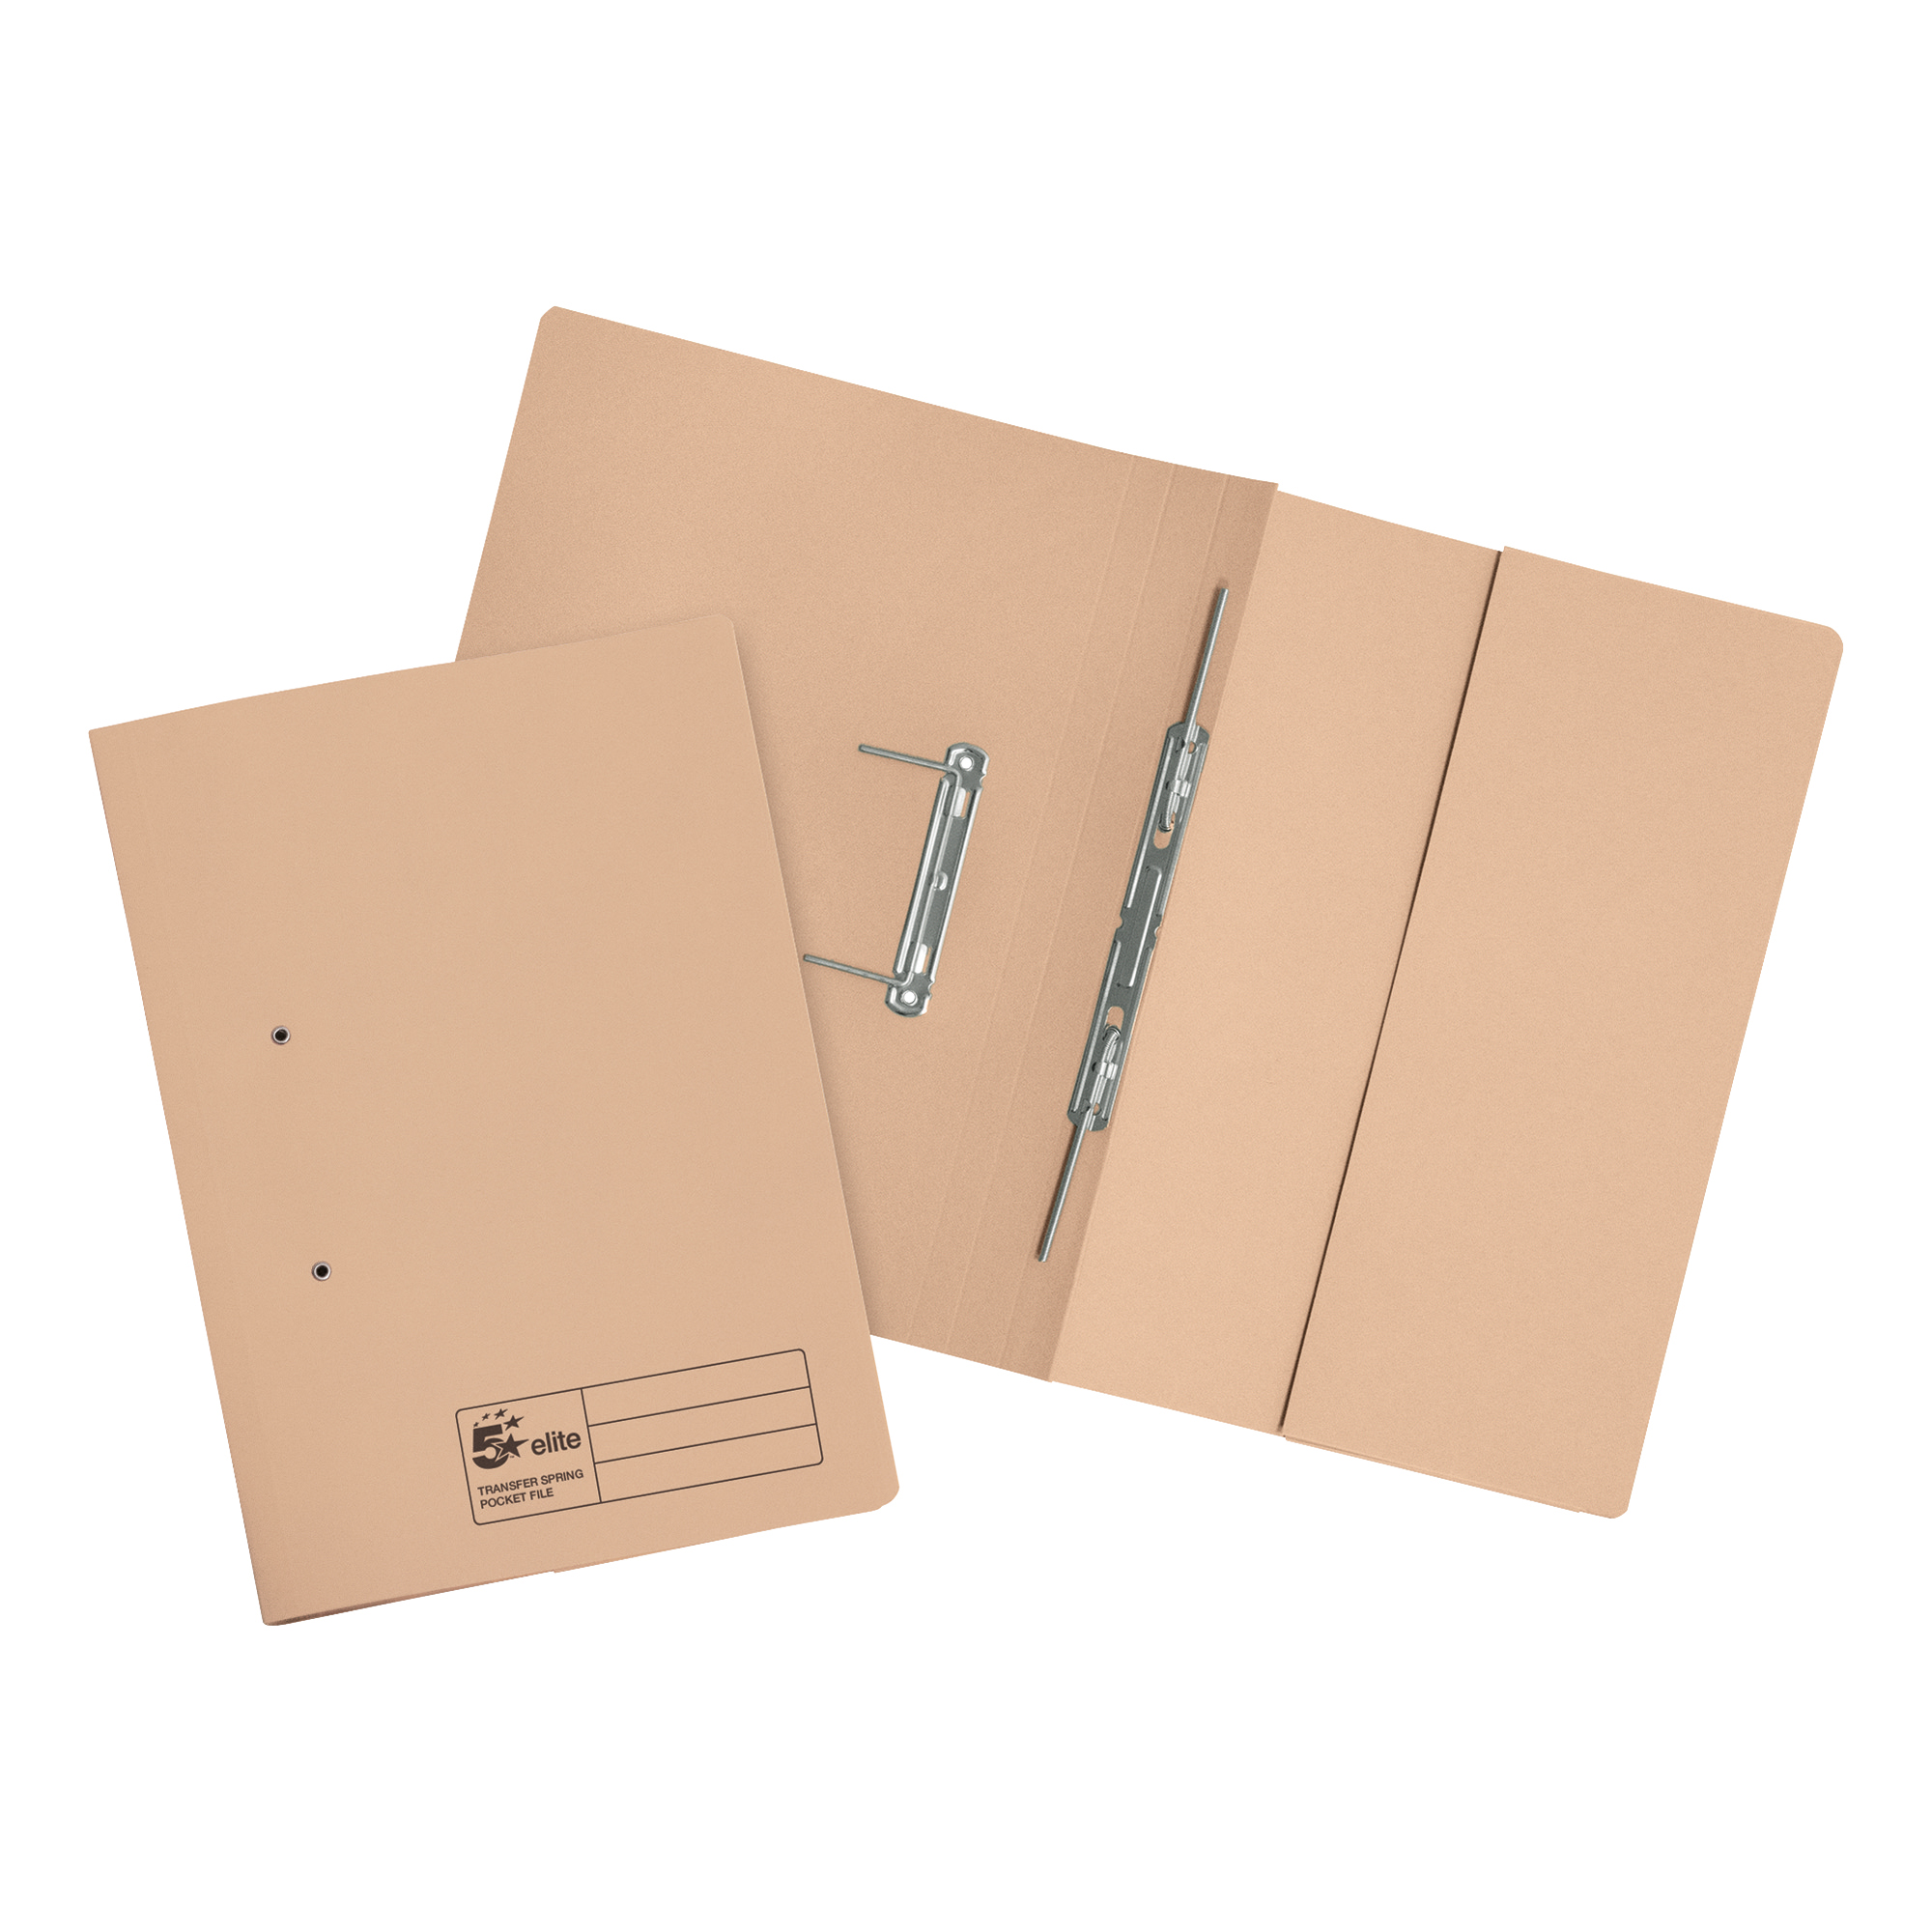 Spring Files 5 Star Elite Transfer Spring Pocket File Heavyweight 315gsm Foolscap Buff Pack 25